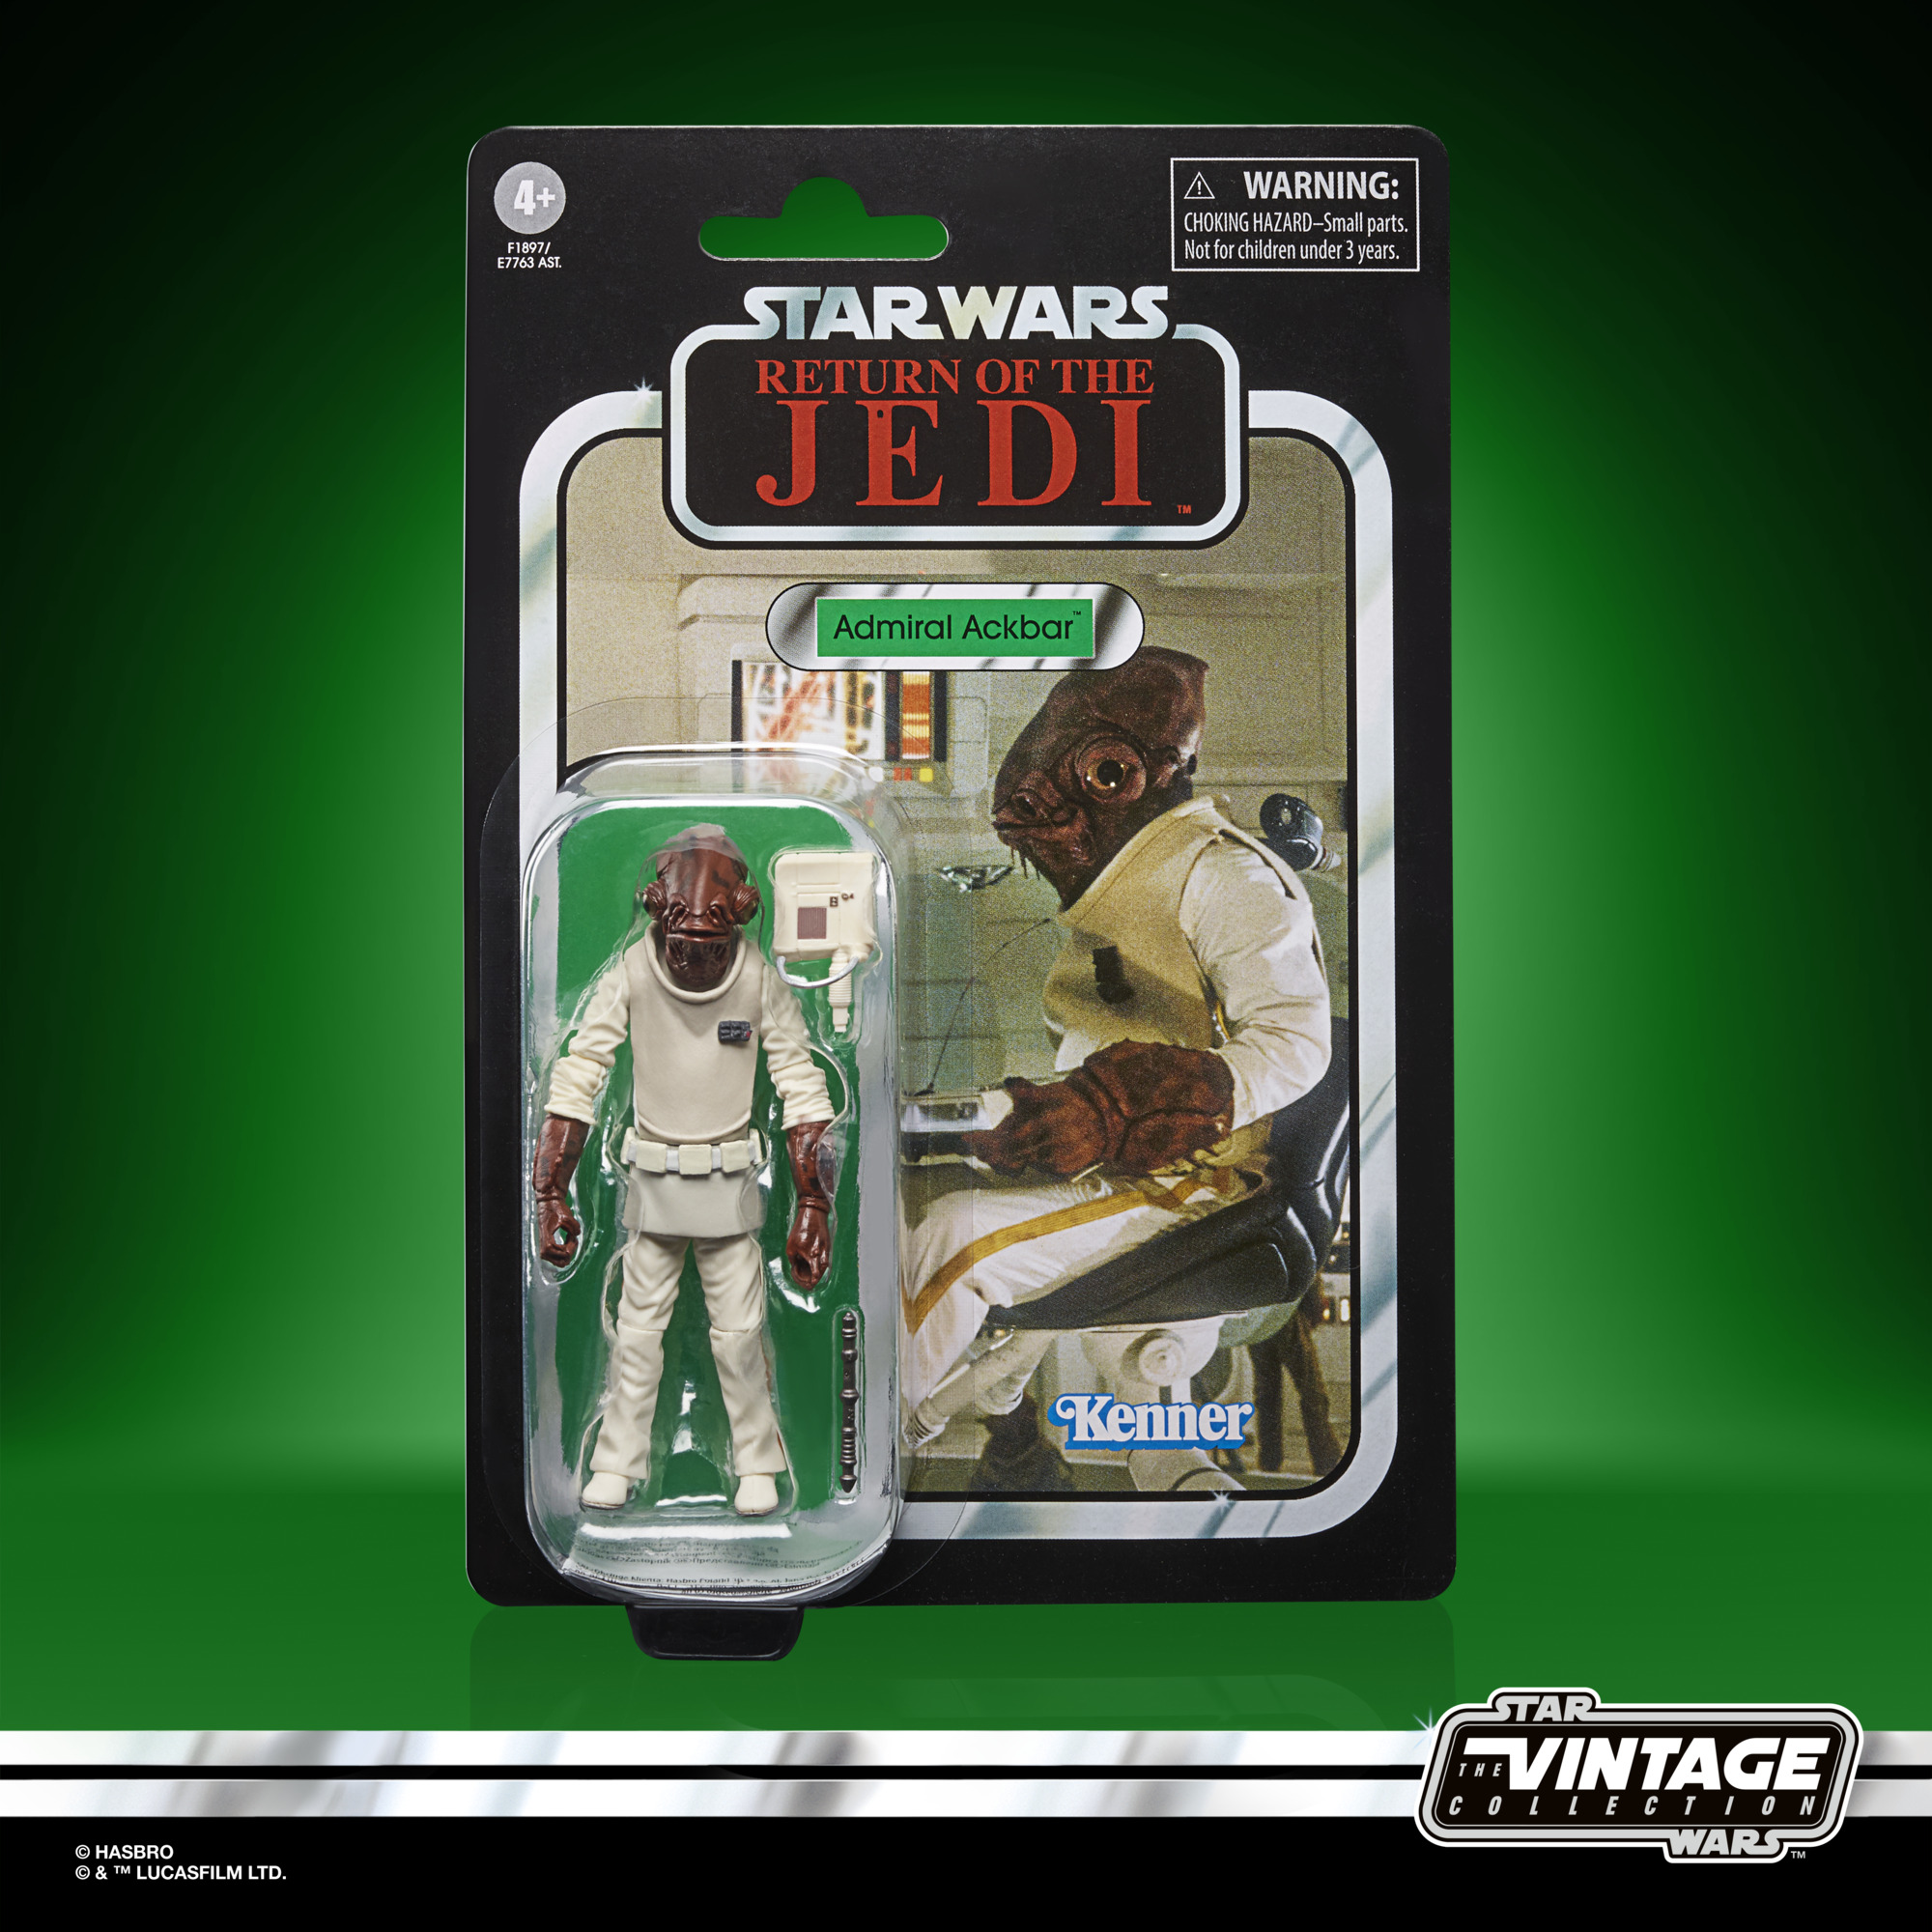 STAR WARS THE VINTAGE COLLECTION 3.75-INCH ADMIRAL ACKBAR Figure – in pck(1)